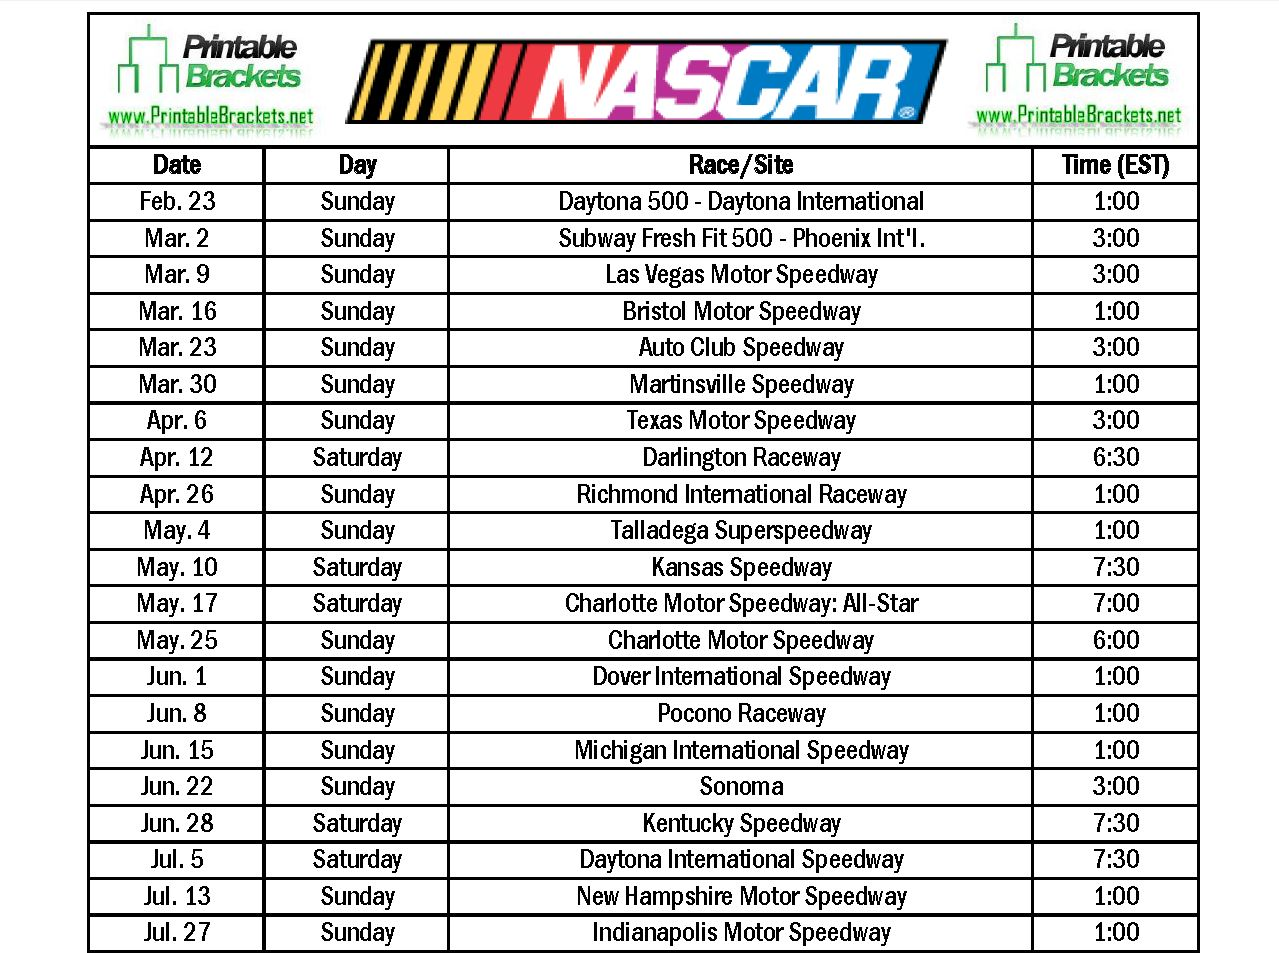 NASCARSchedule submited images.